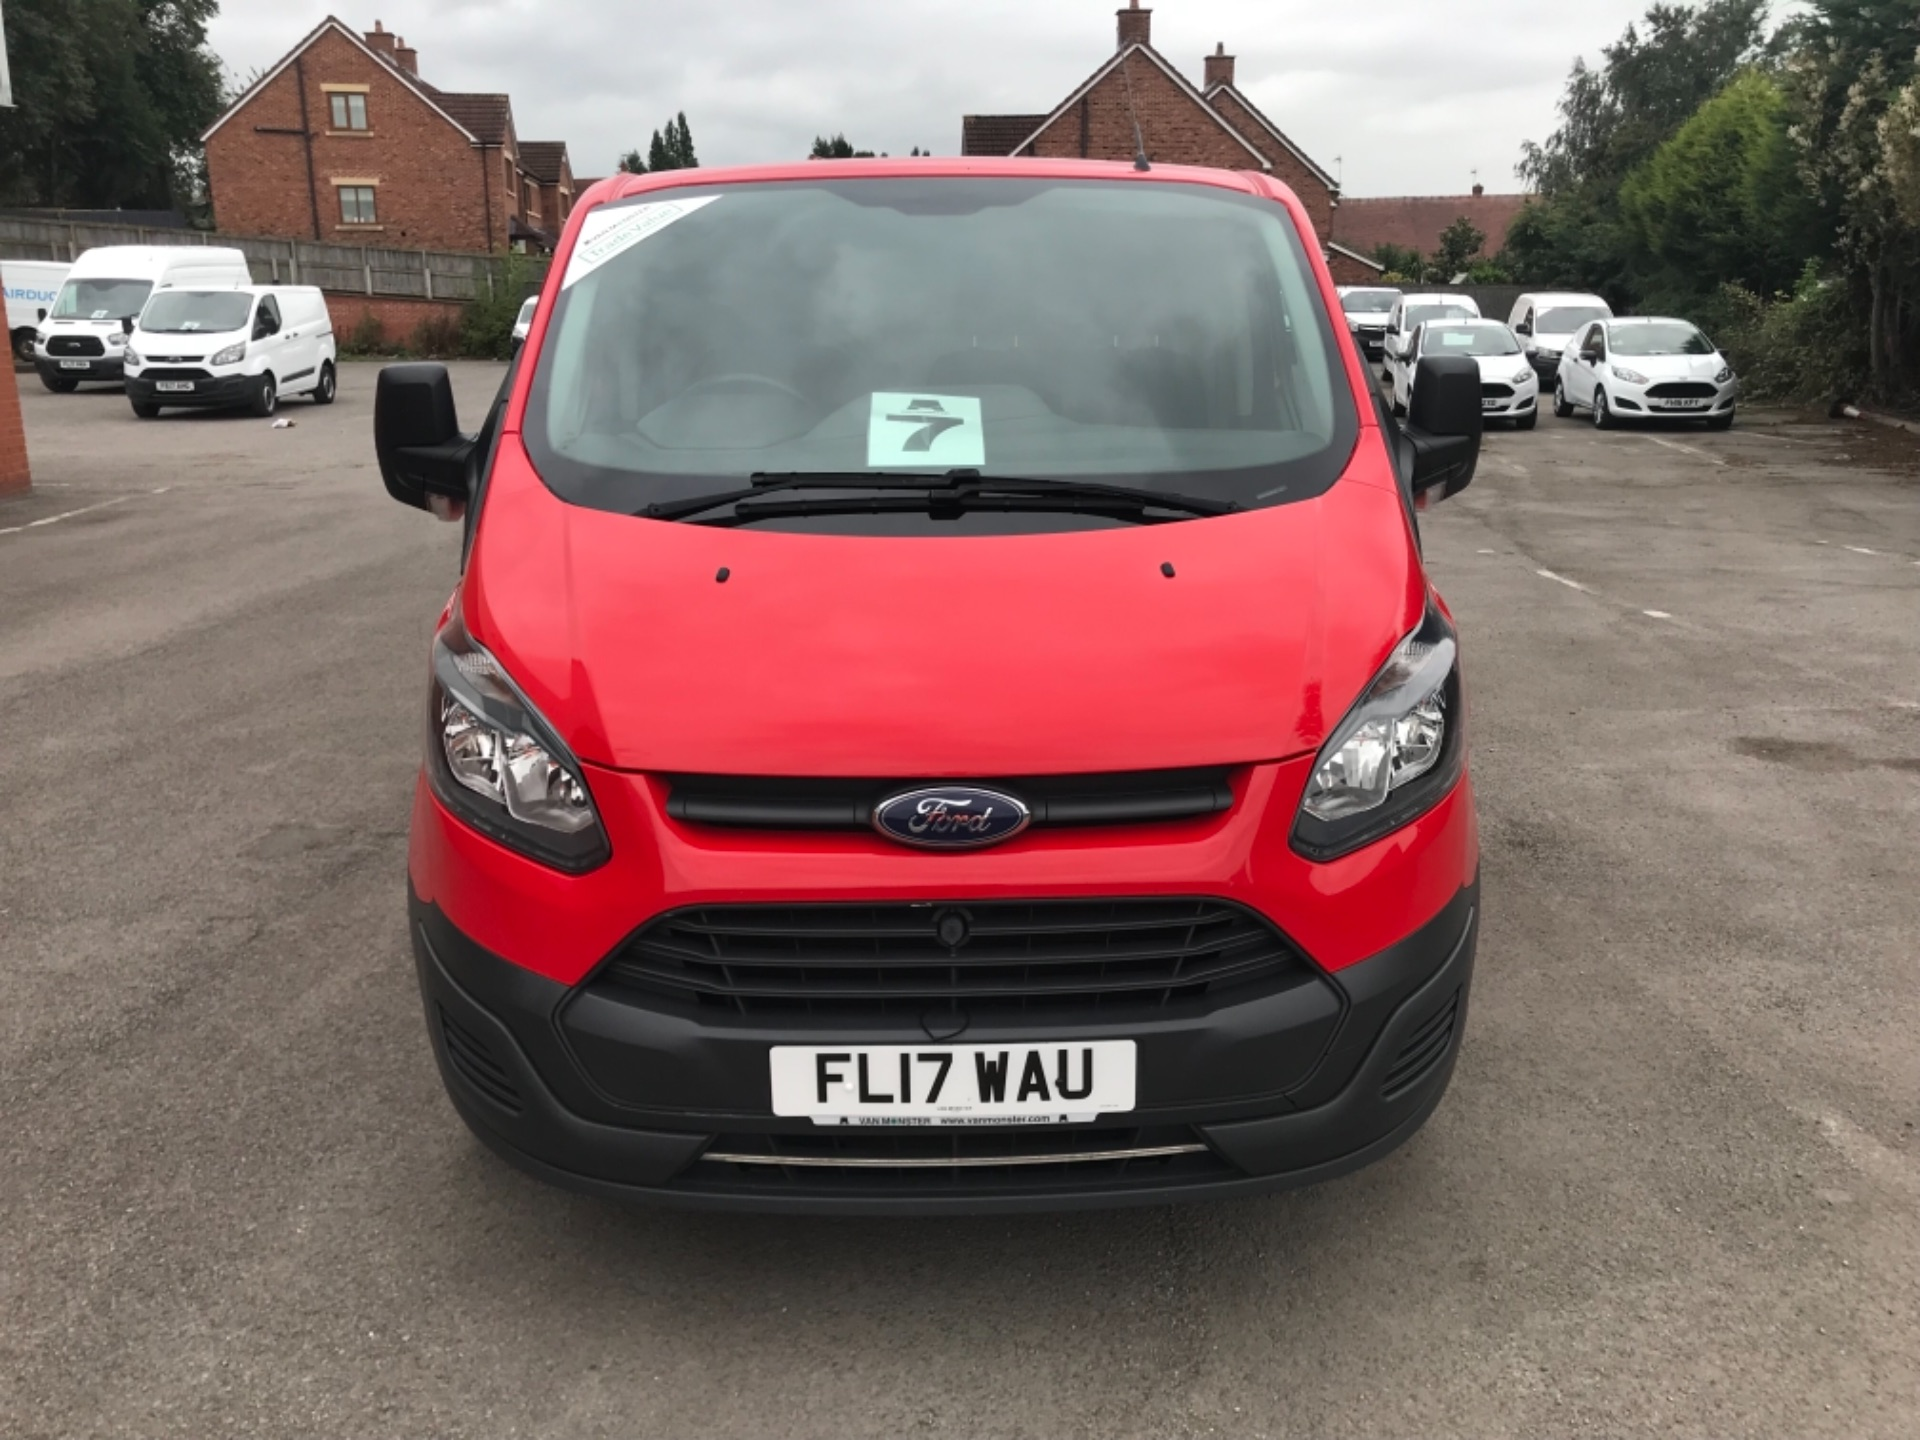 2017 Ford Transit Custom 2.0 Tdci 105Ps Low Roof Van EURO 6 (FL17WAU) Image 2